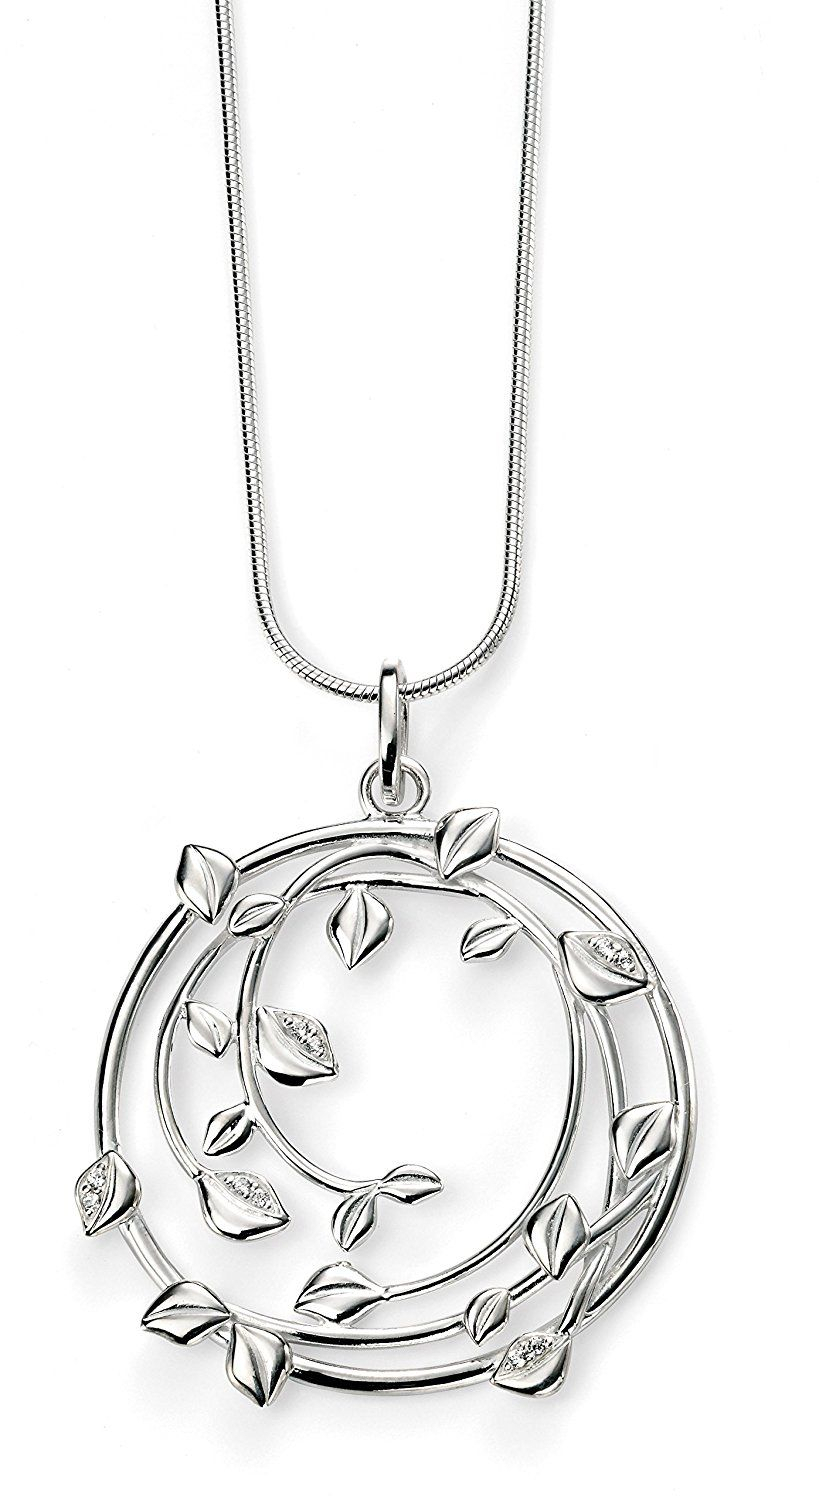 Elements Sterling Silver Ladies Large Swirl Pendant With Pave Clear Intended For Most Recently Released Pavé Locket Element Necklaces (View 8 of 25)